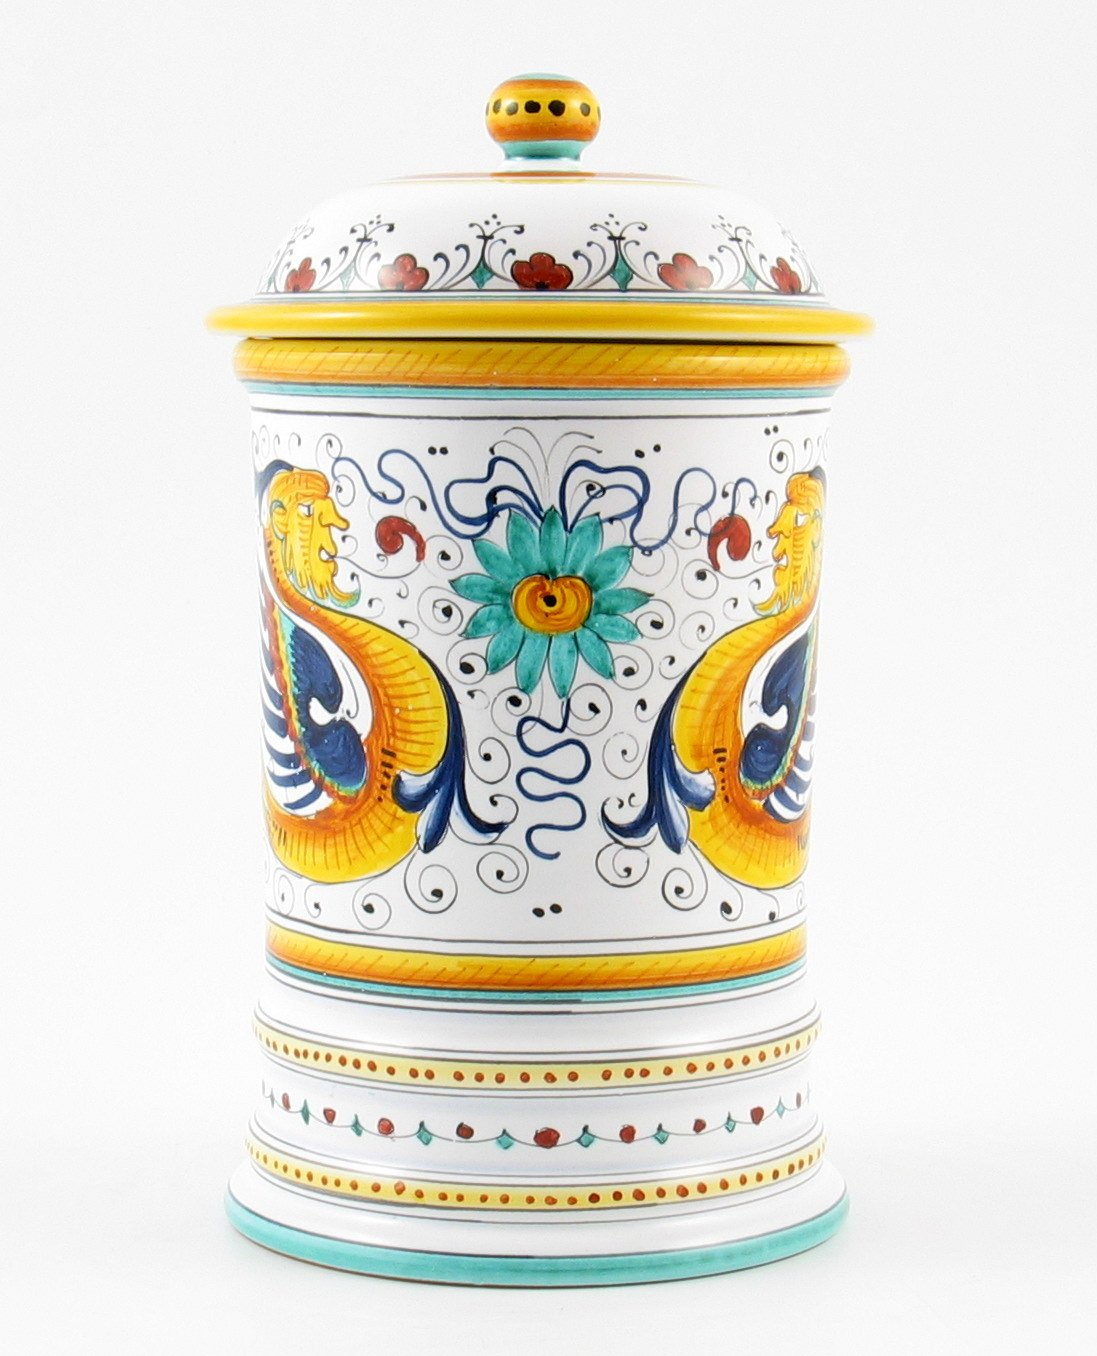 Hand Painted Italian Ceramic 9.8-inch Shaped Canister Raffaellesco - Handmade in Deruta